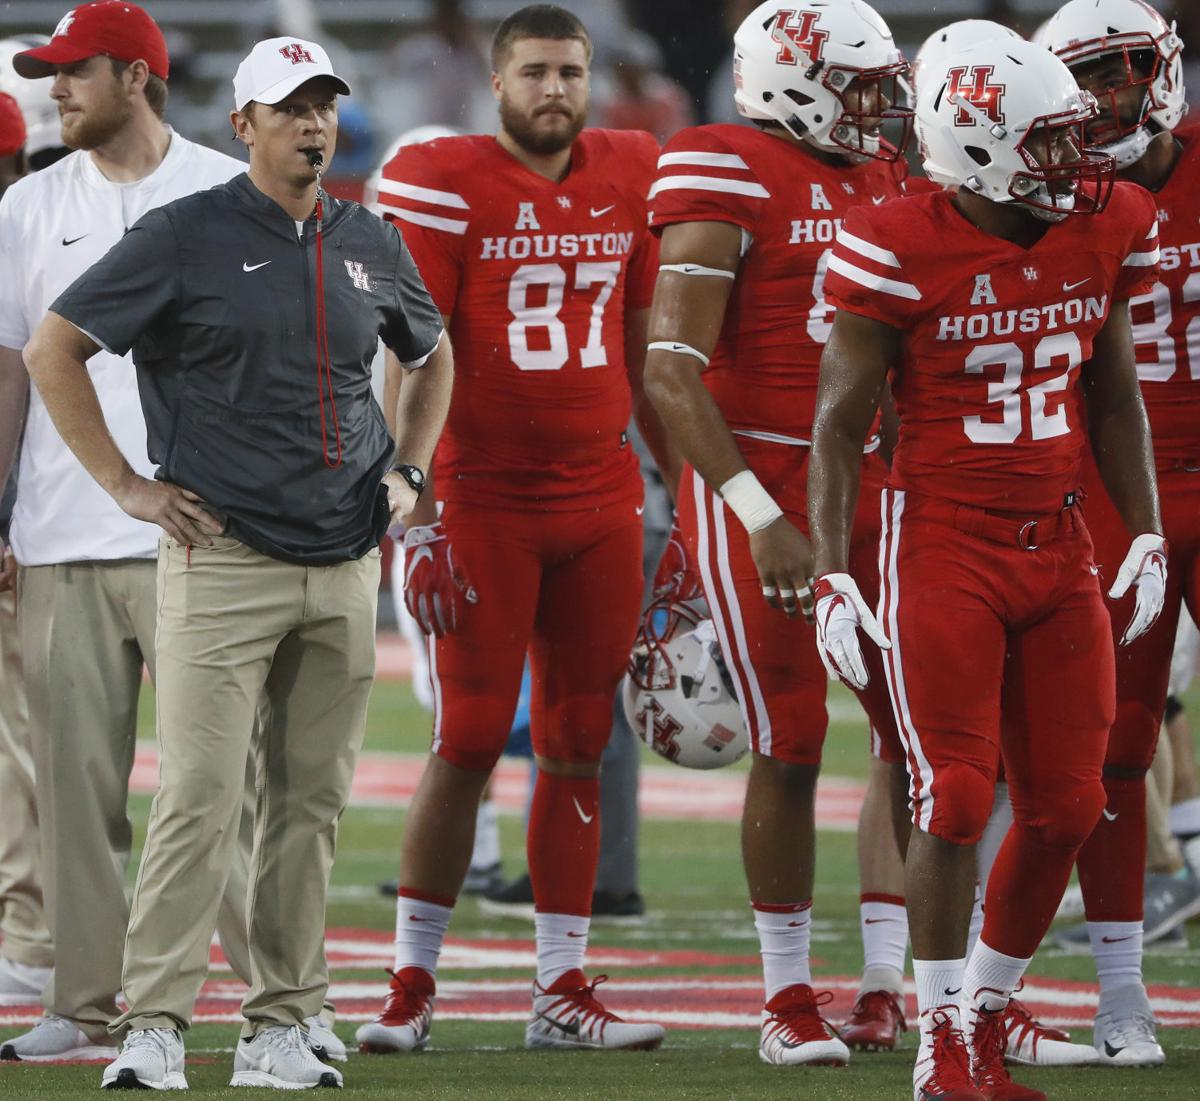 Houston Cougars vs. Texas Southern Tigers